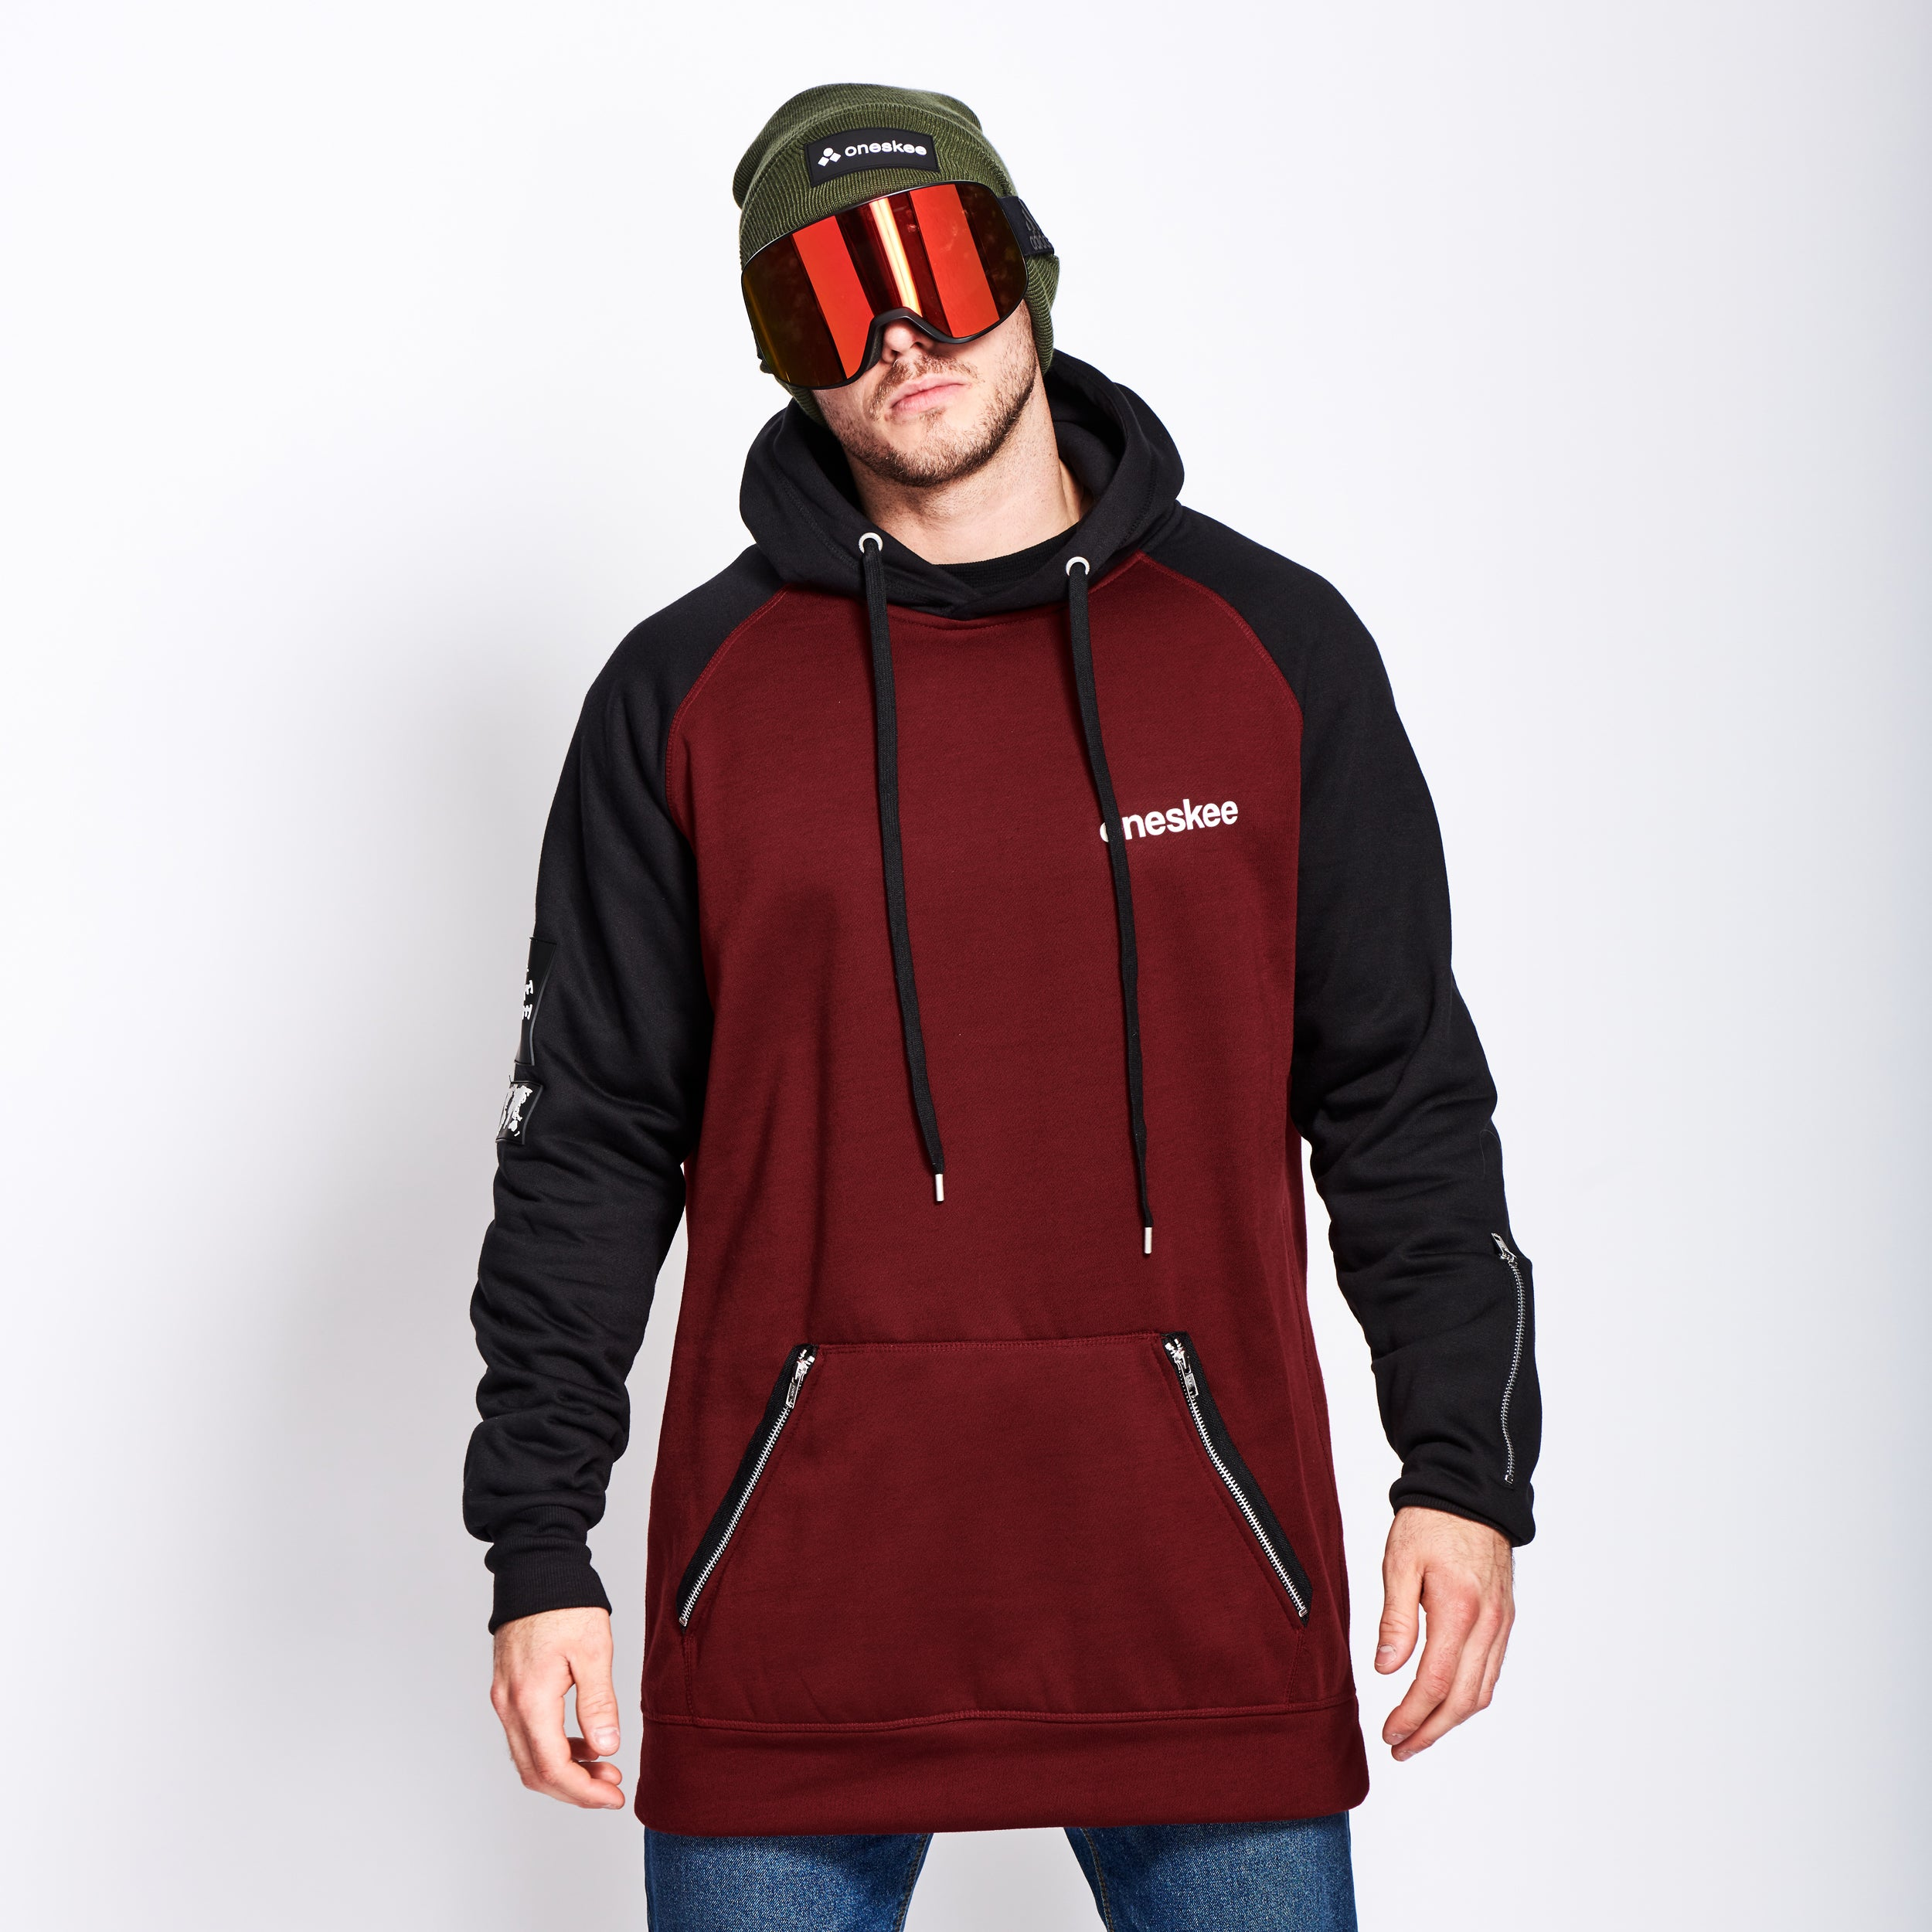 Men's Technical Raglan Hoodie - Burgundy image 1